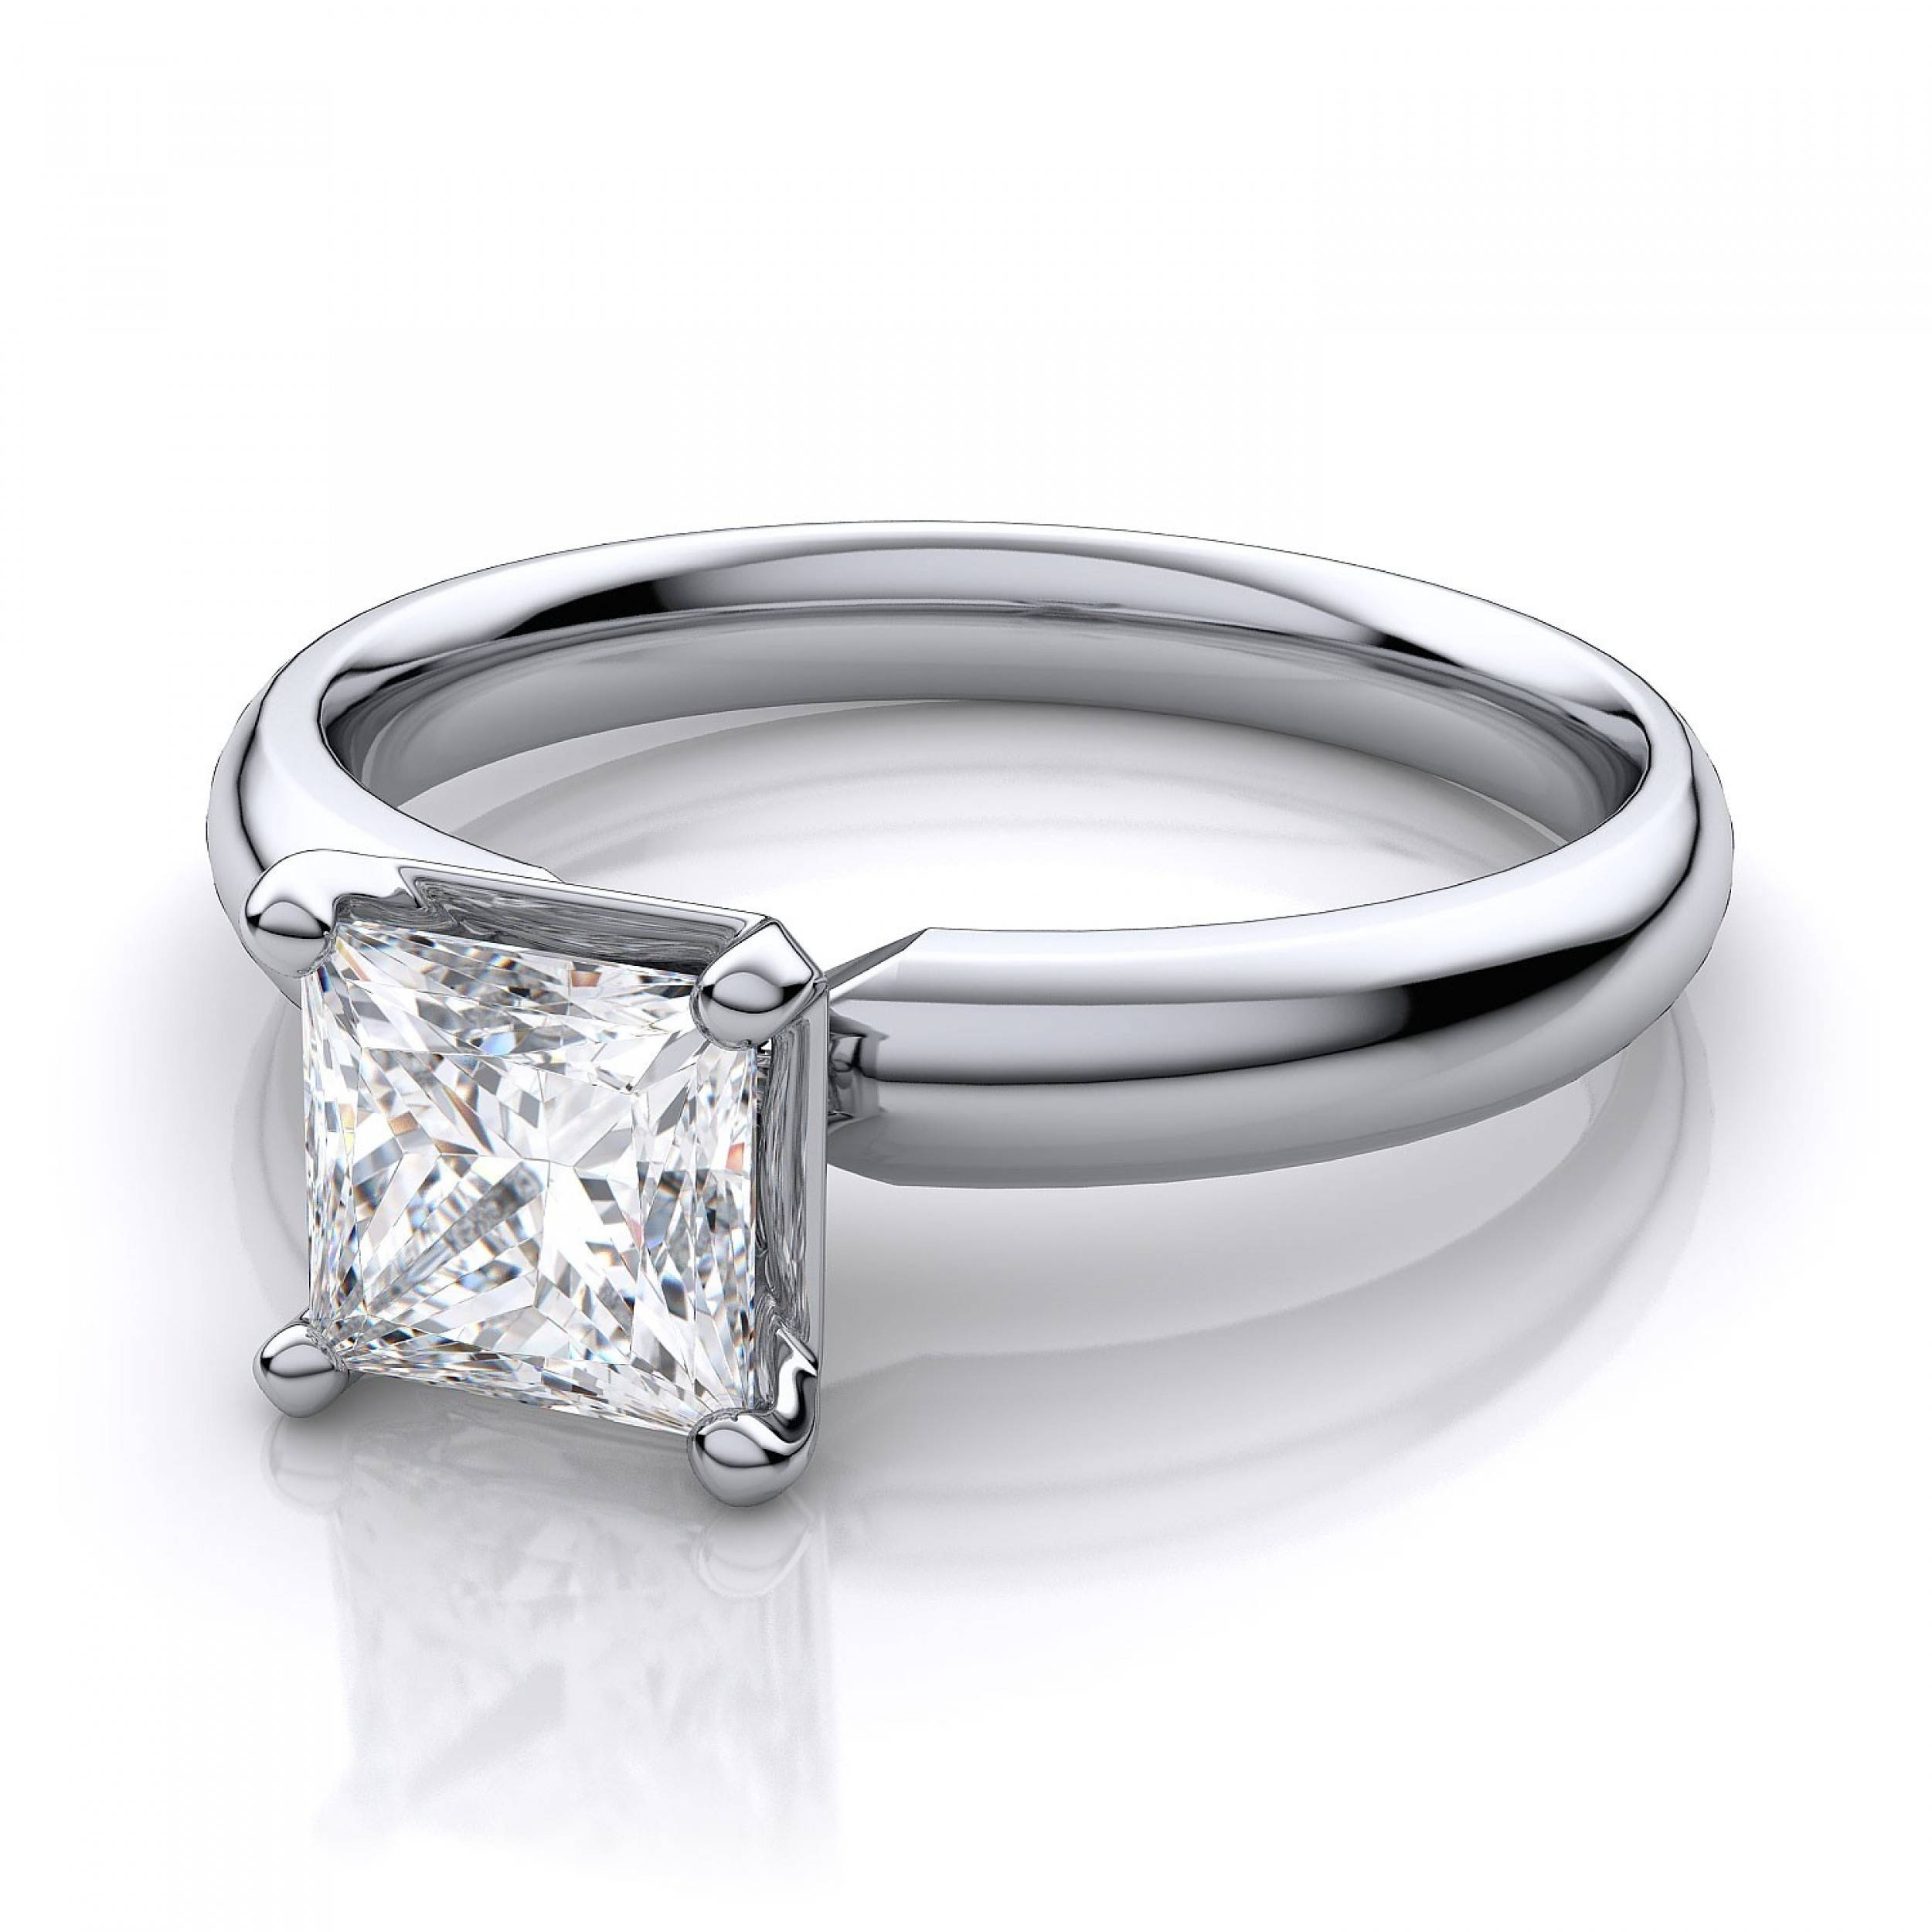 Mm Princess Cut Solitaire Diamond Ring Setting – 14K White Gold Regarding Diamond Wedding Rings Settings (View 10 of 15)